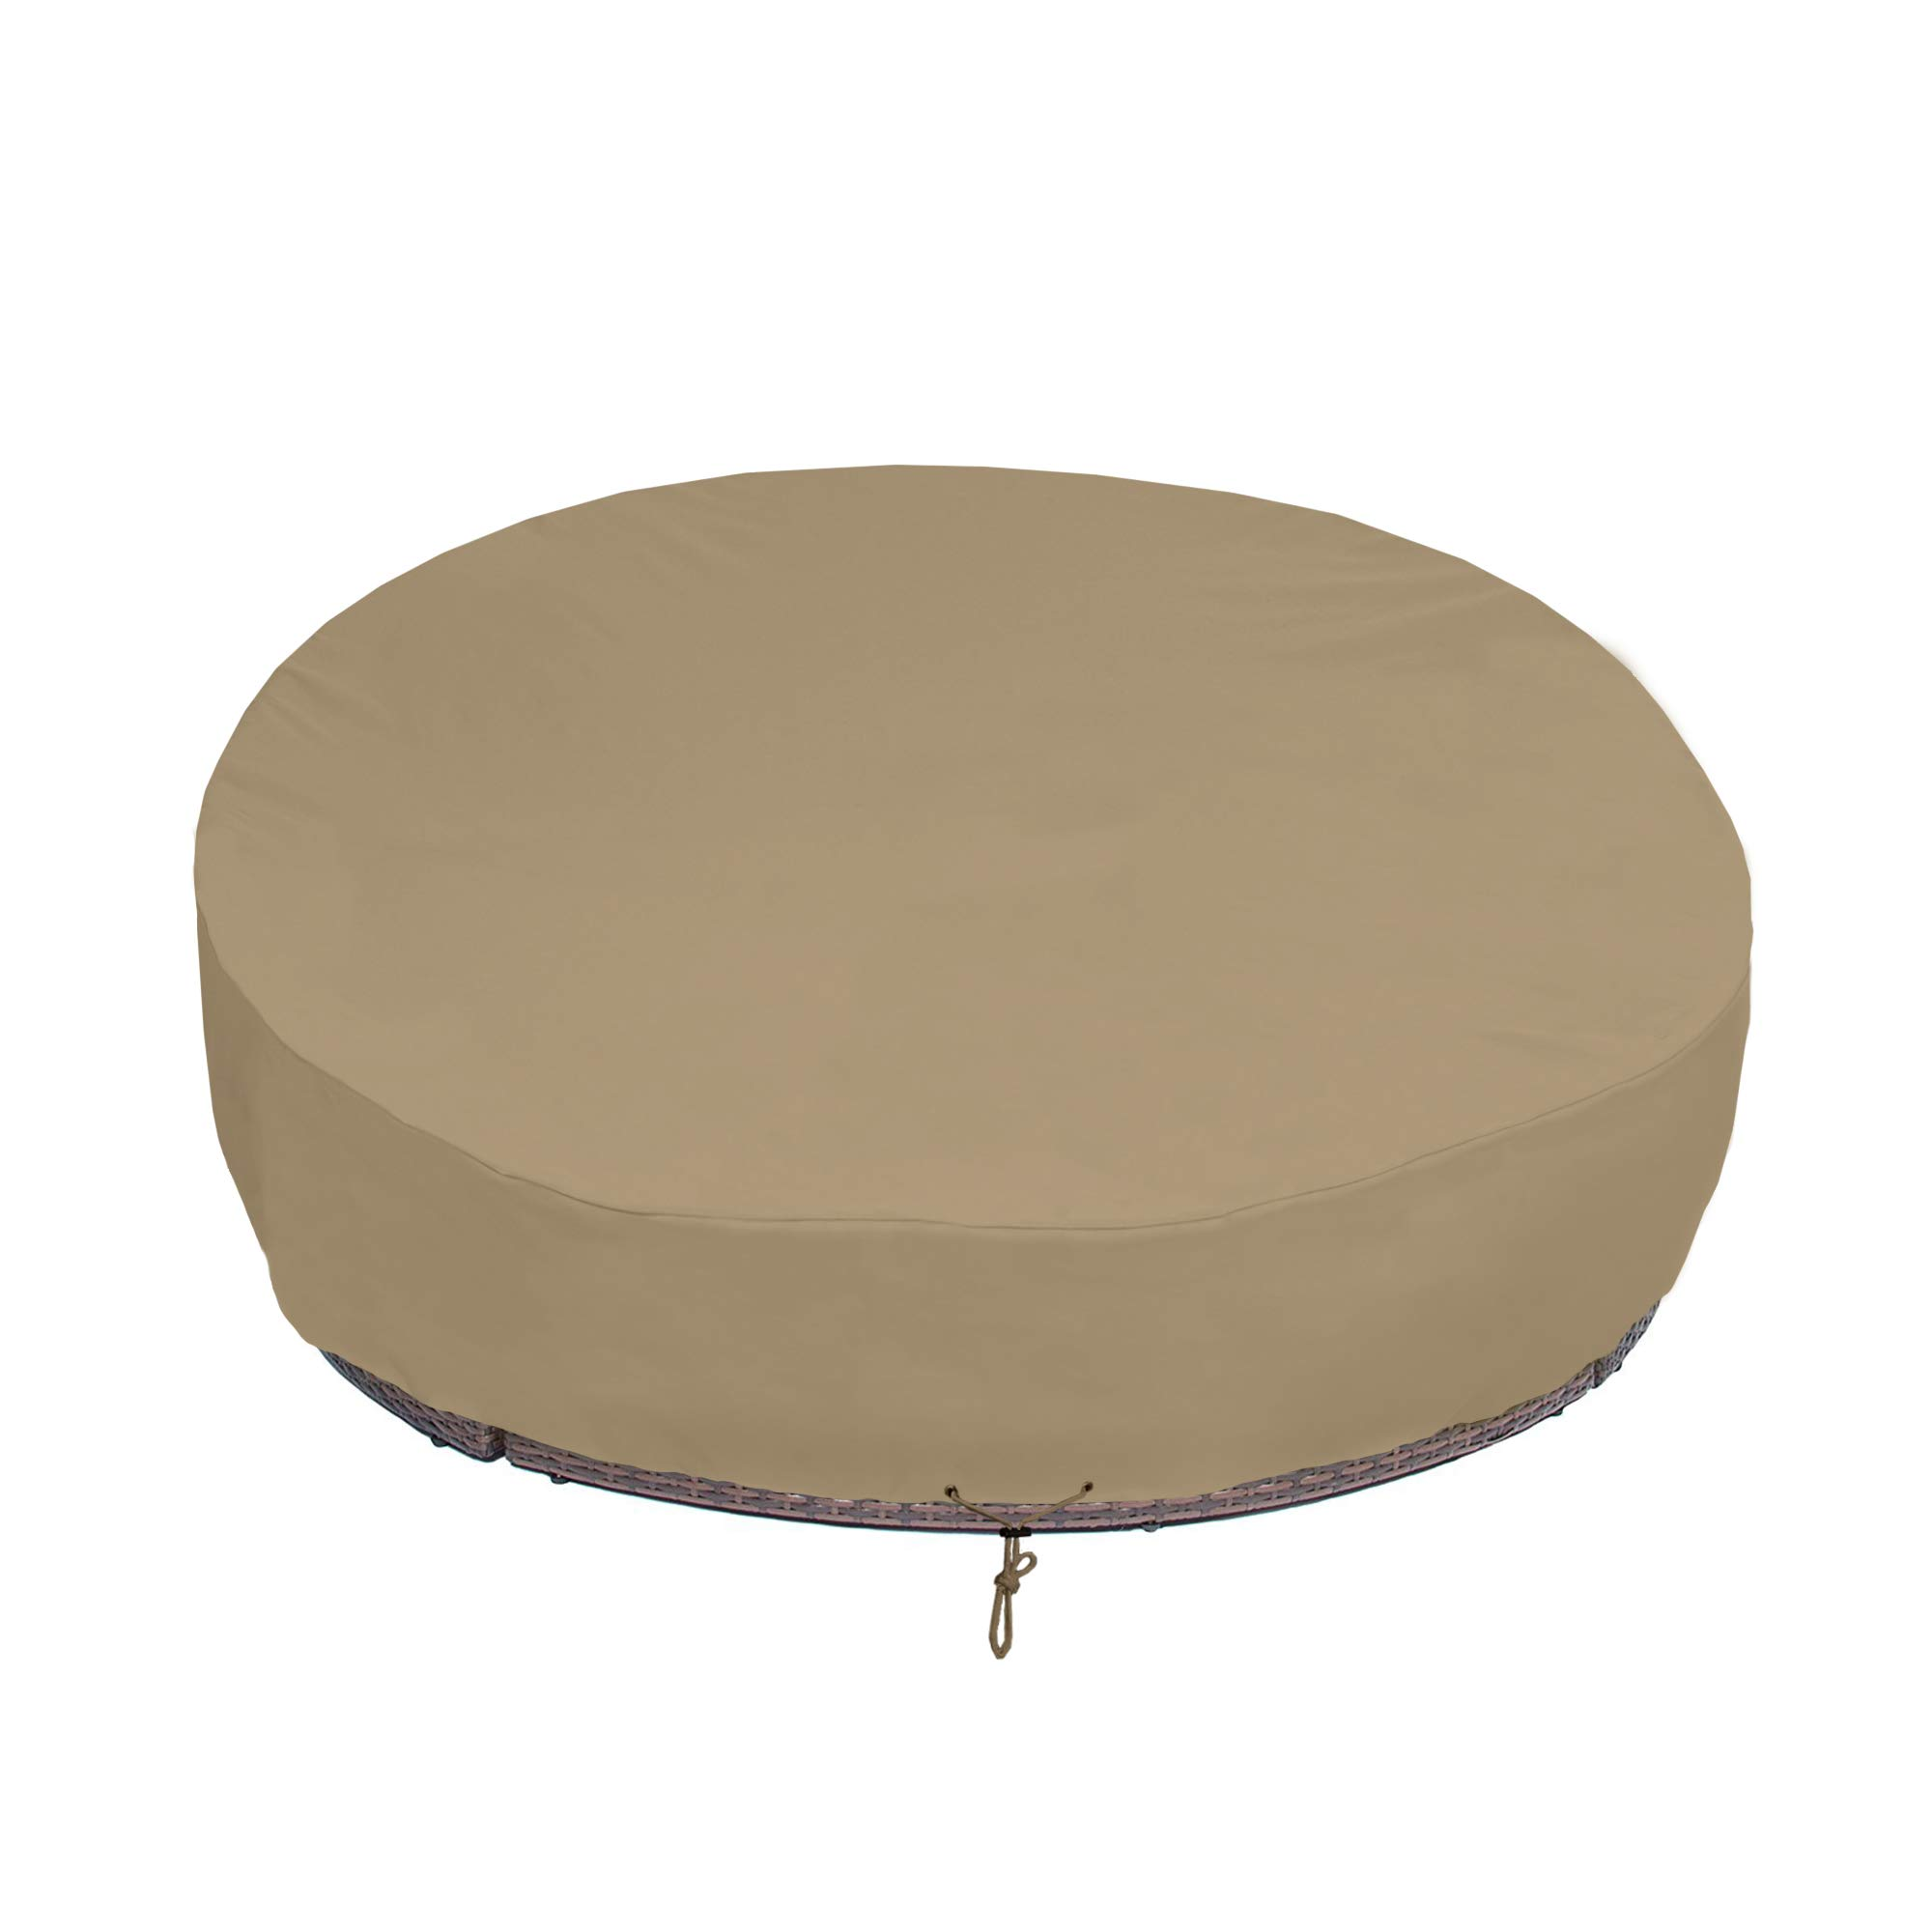 SunPatio Round Patio Daybed Cover 88 Inch, Outdoor Canopy Daybed Sofa Cover with Waterproof Sealed Seam, UV Resistant, All Weather Protection, Taupe by SunPatio